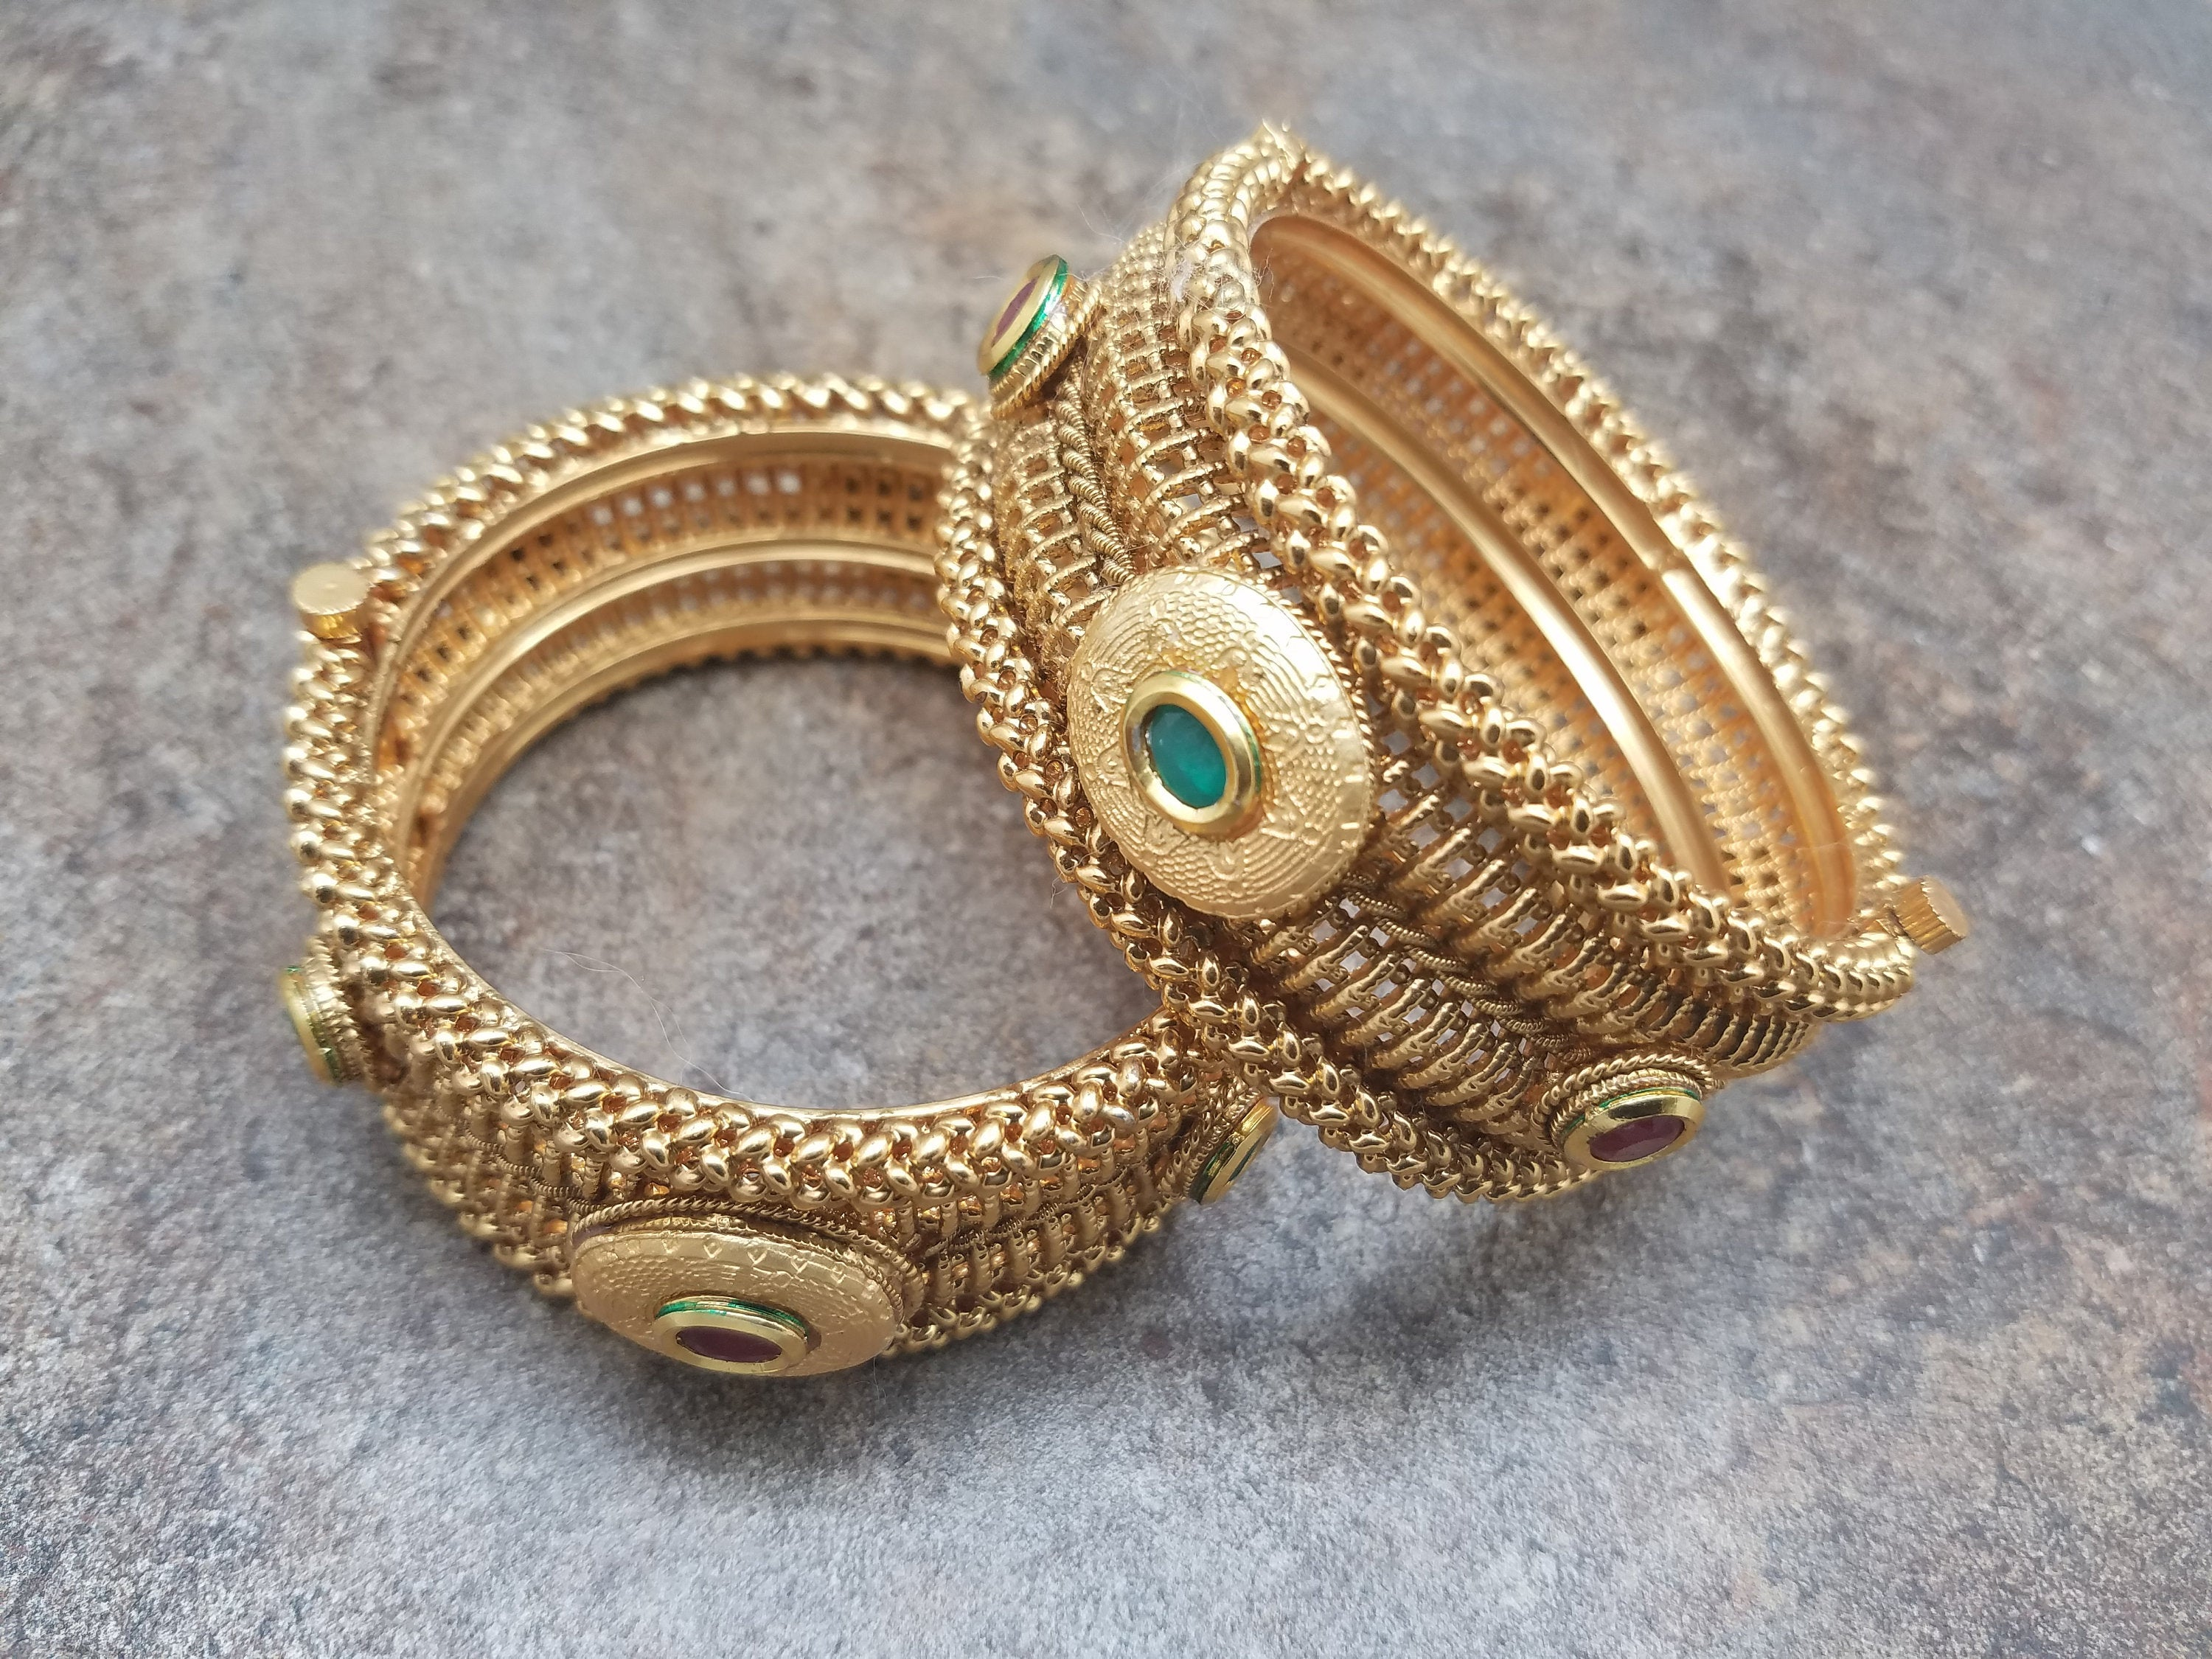 Pair of Bangles, Gold w/Faux Emerald, Red CZ stones Kada, Size 2/6